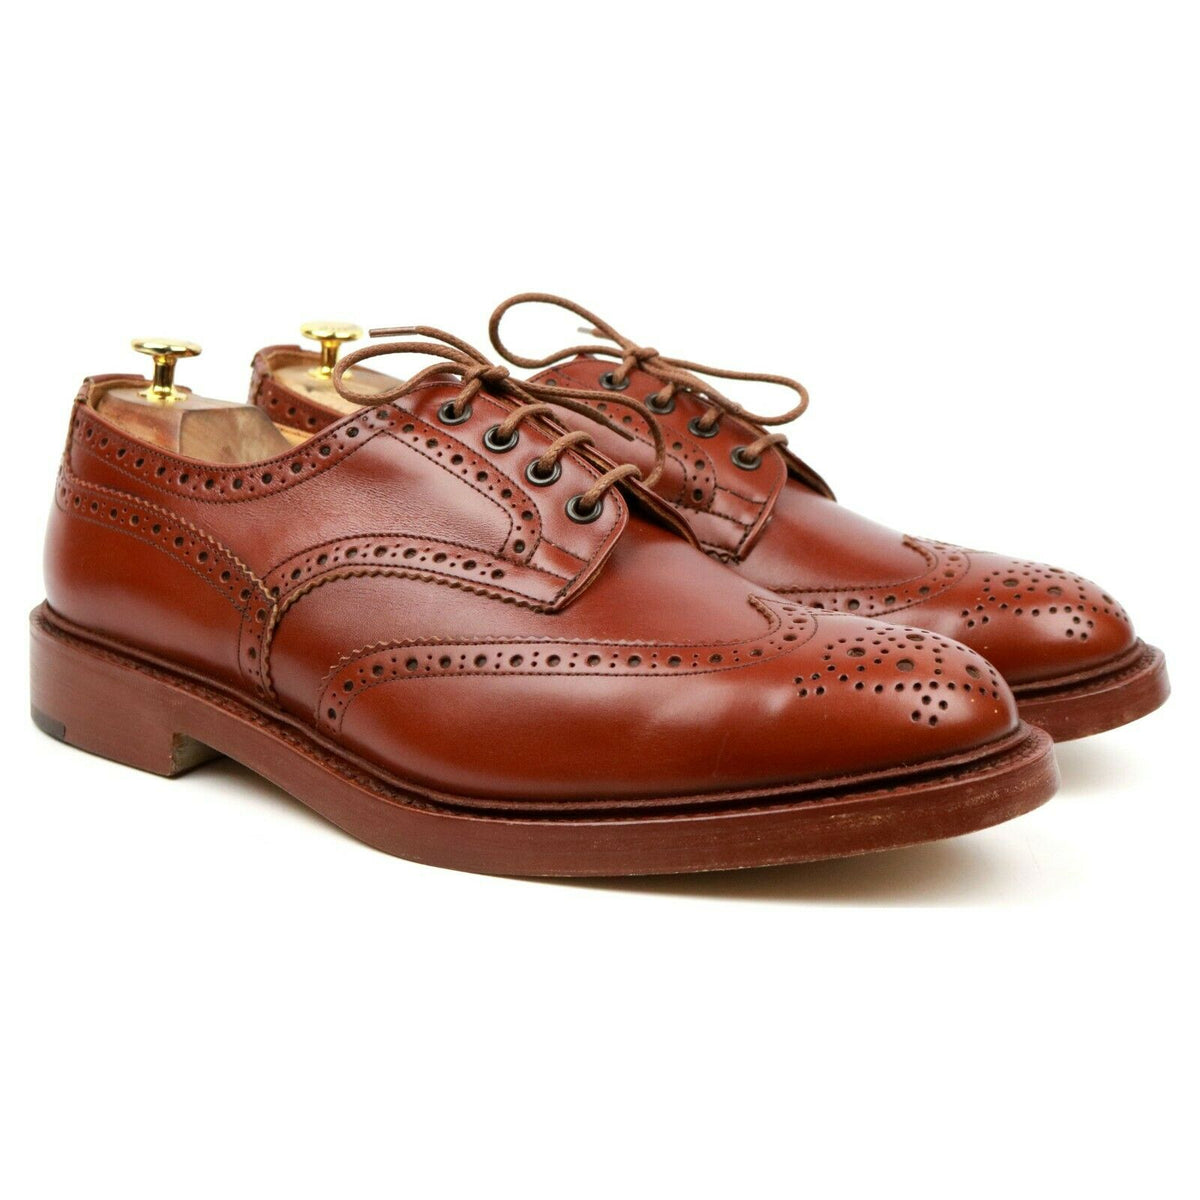 Tricker's 'Bourton' Tan Brown Leather Country Derby Brogues UK 12